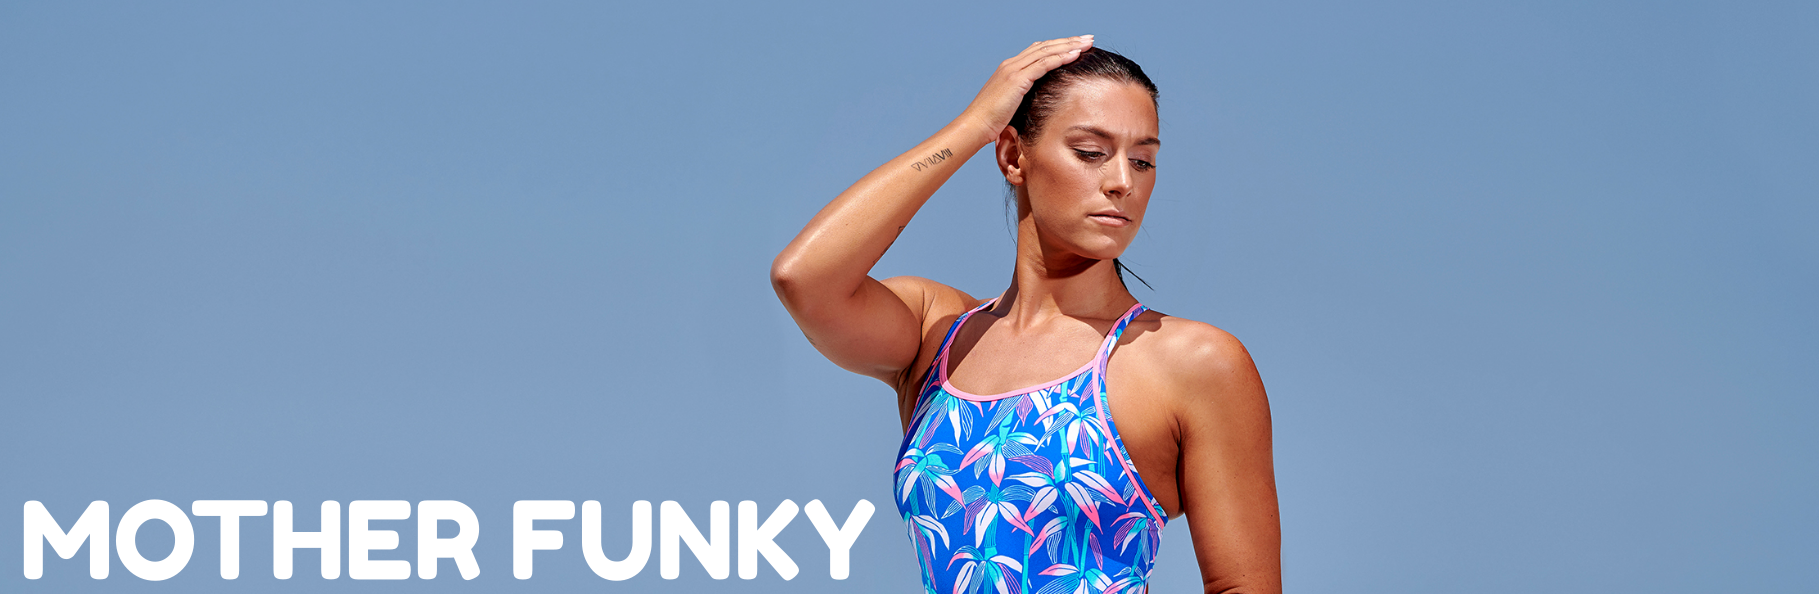 FUNKITA & FUNKY TRUNKS MOTHER FUNKY SWIMWEAR COLLECTION